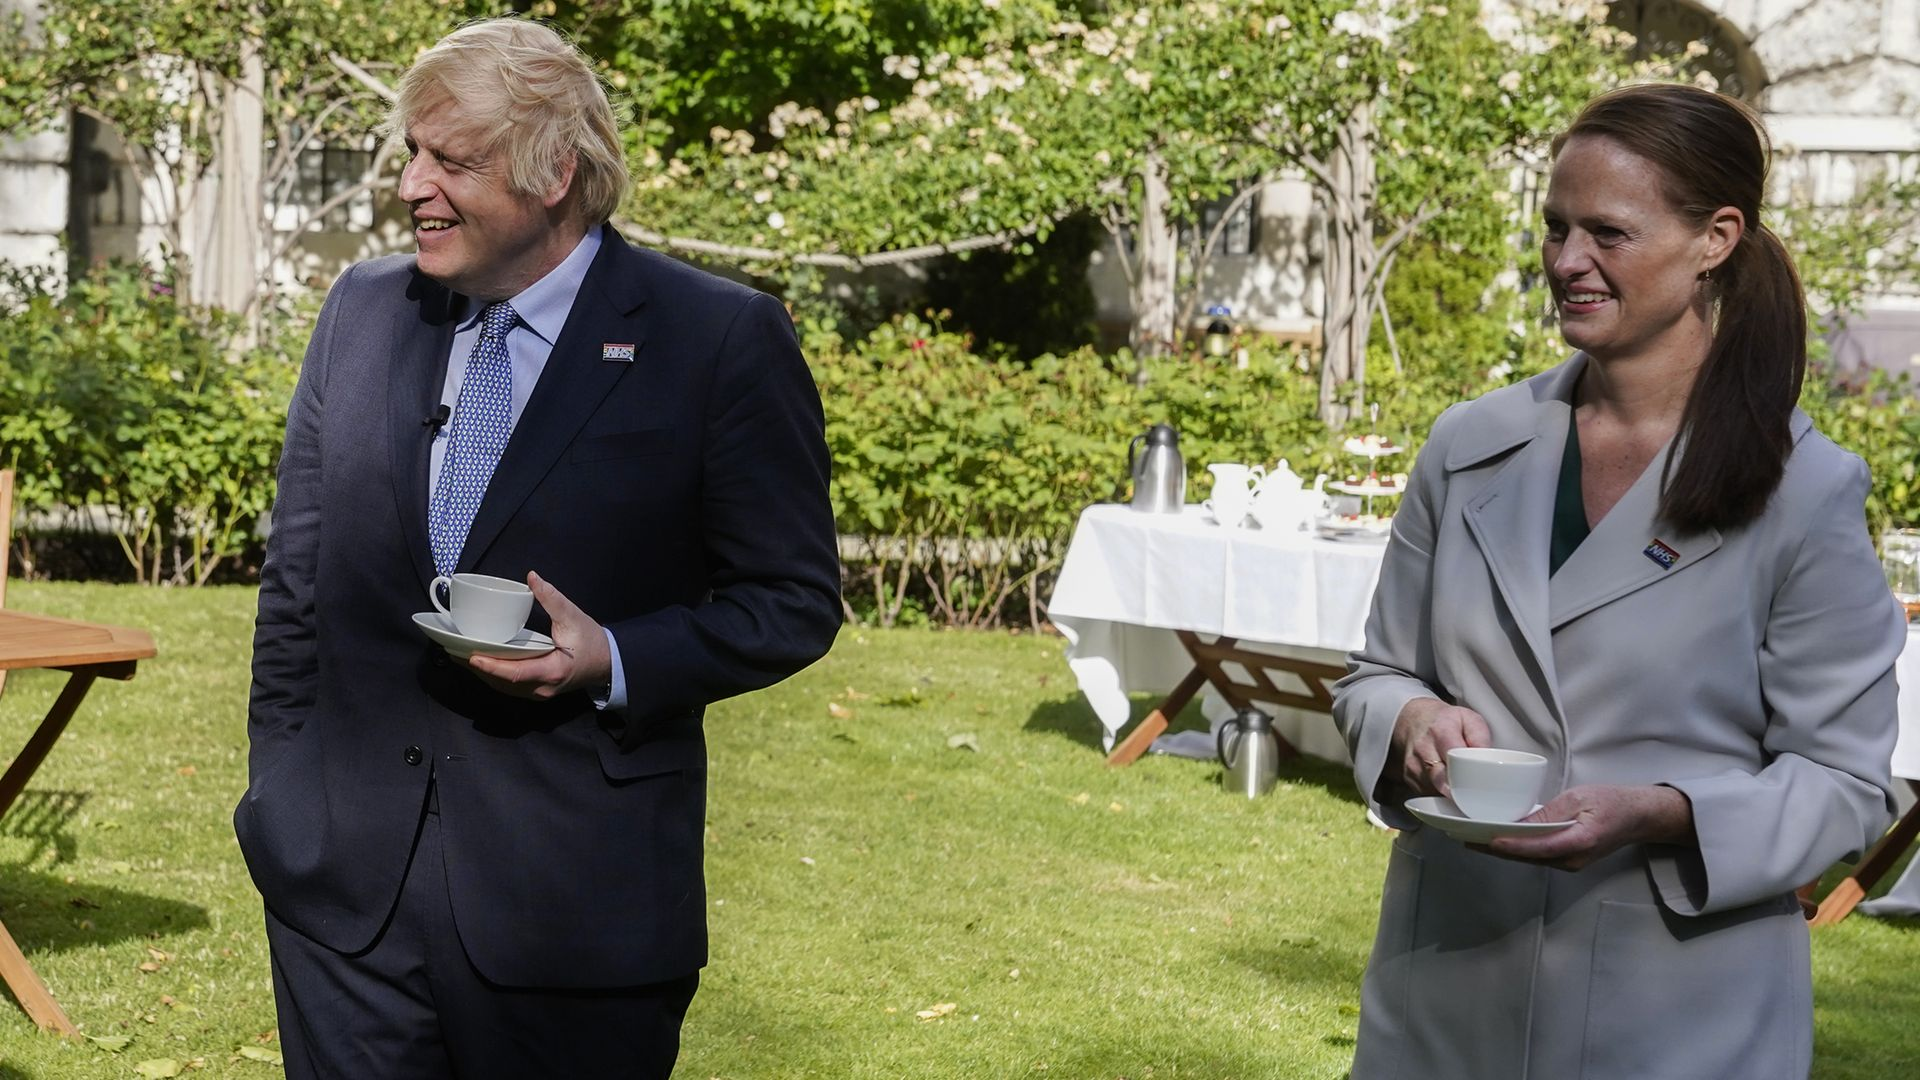 Jenny McGee (right) at a Downing Street garden party with Prime Minister Boris Johnson (left) who she looked after while he was in hospital suffering from Covid-19 - Credit: PA